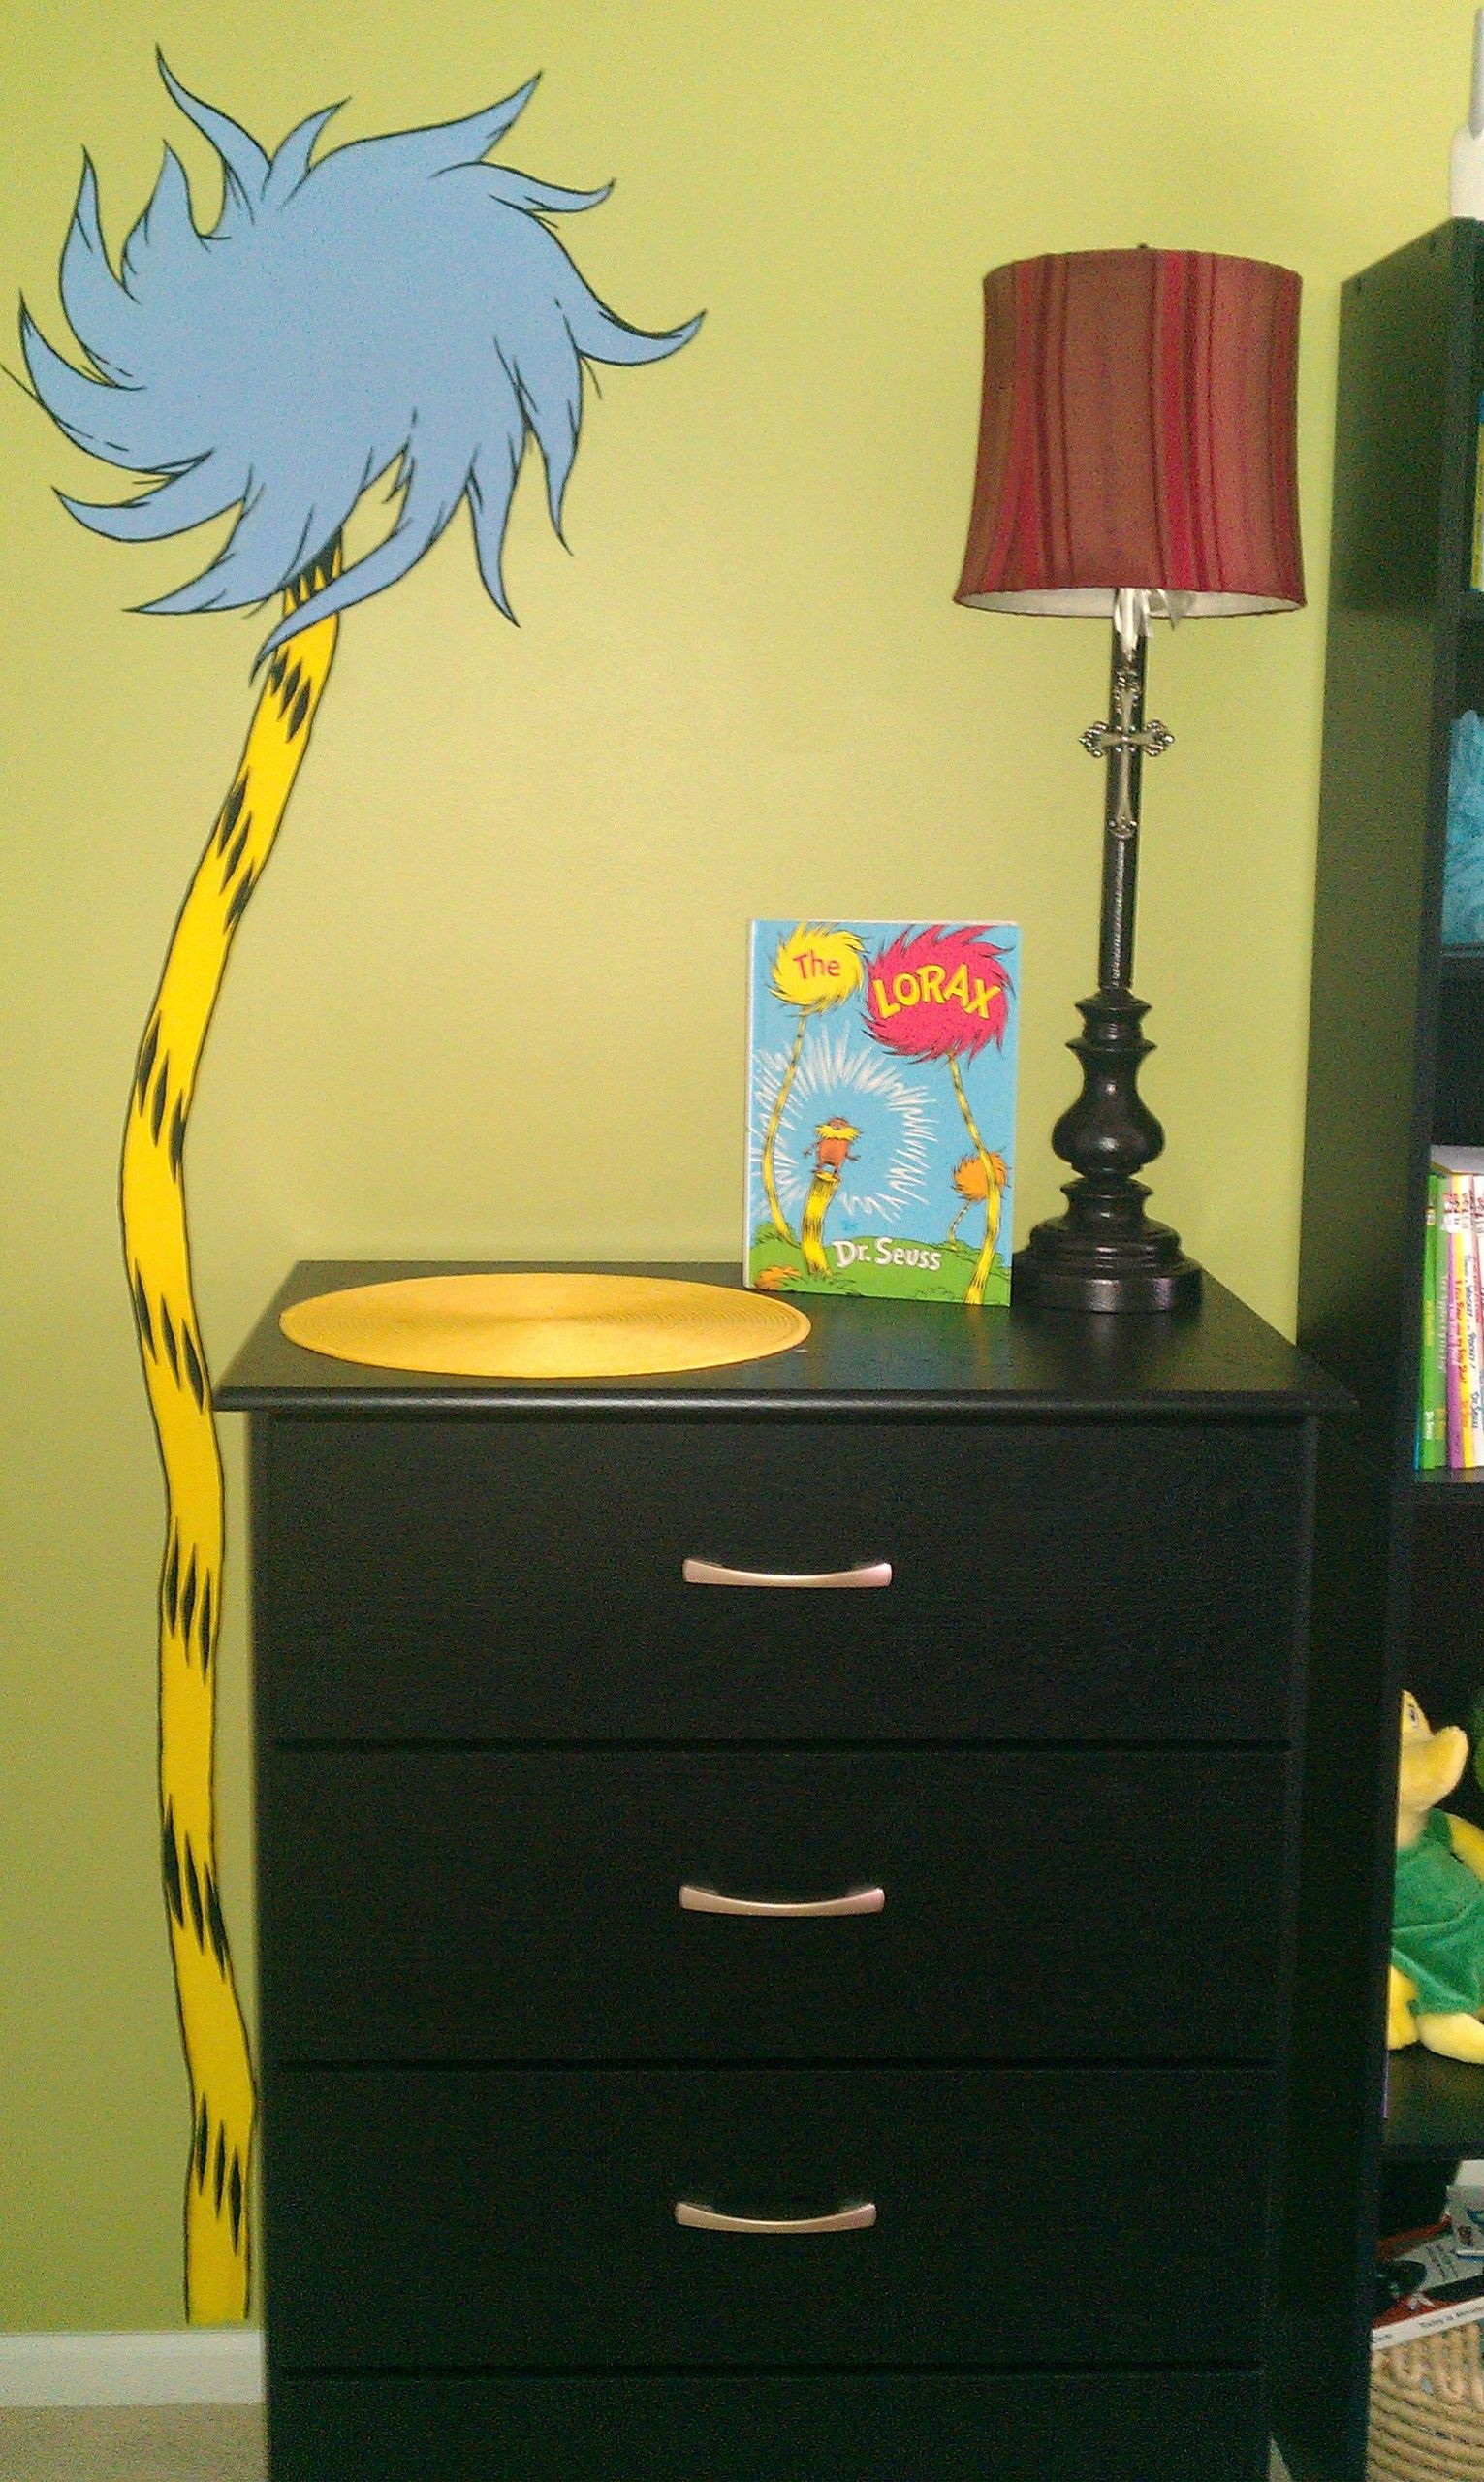 dr seuss nursery | dr. seuss nursery mural - Dr. Seuss Photo ...